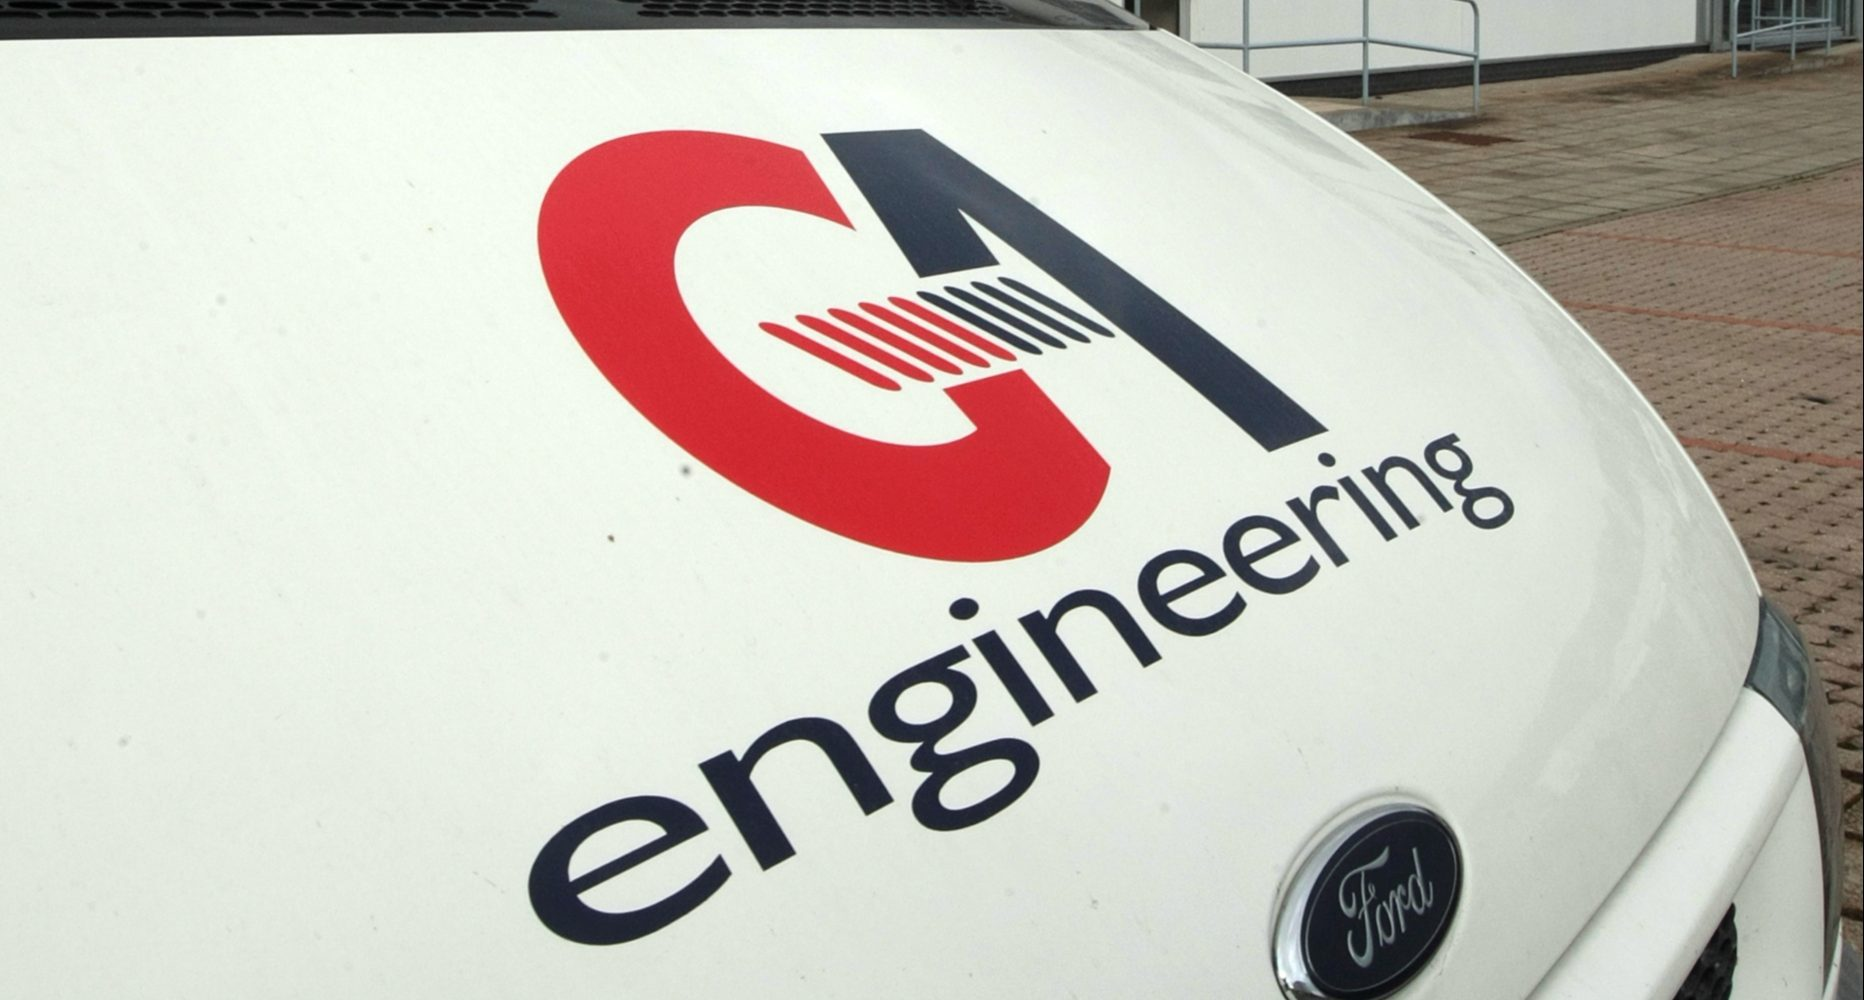 GA Engineering in now part of the Pryme Group.